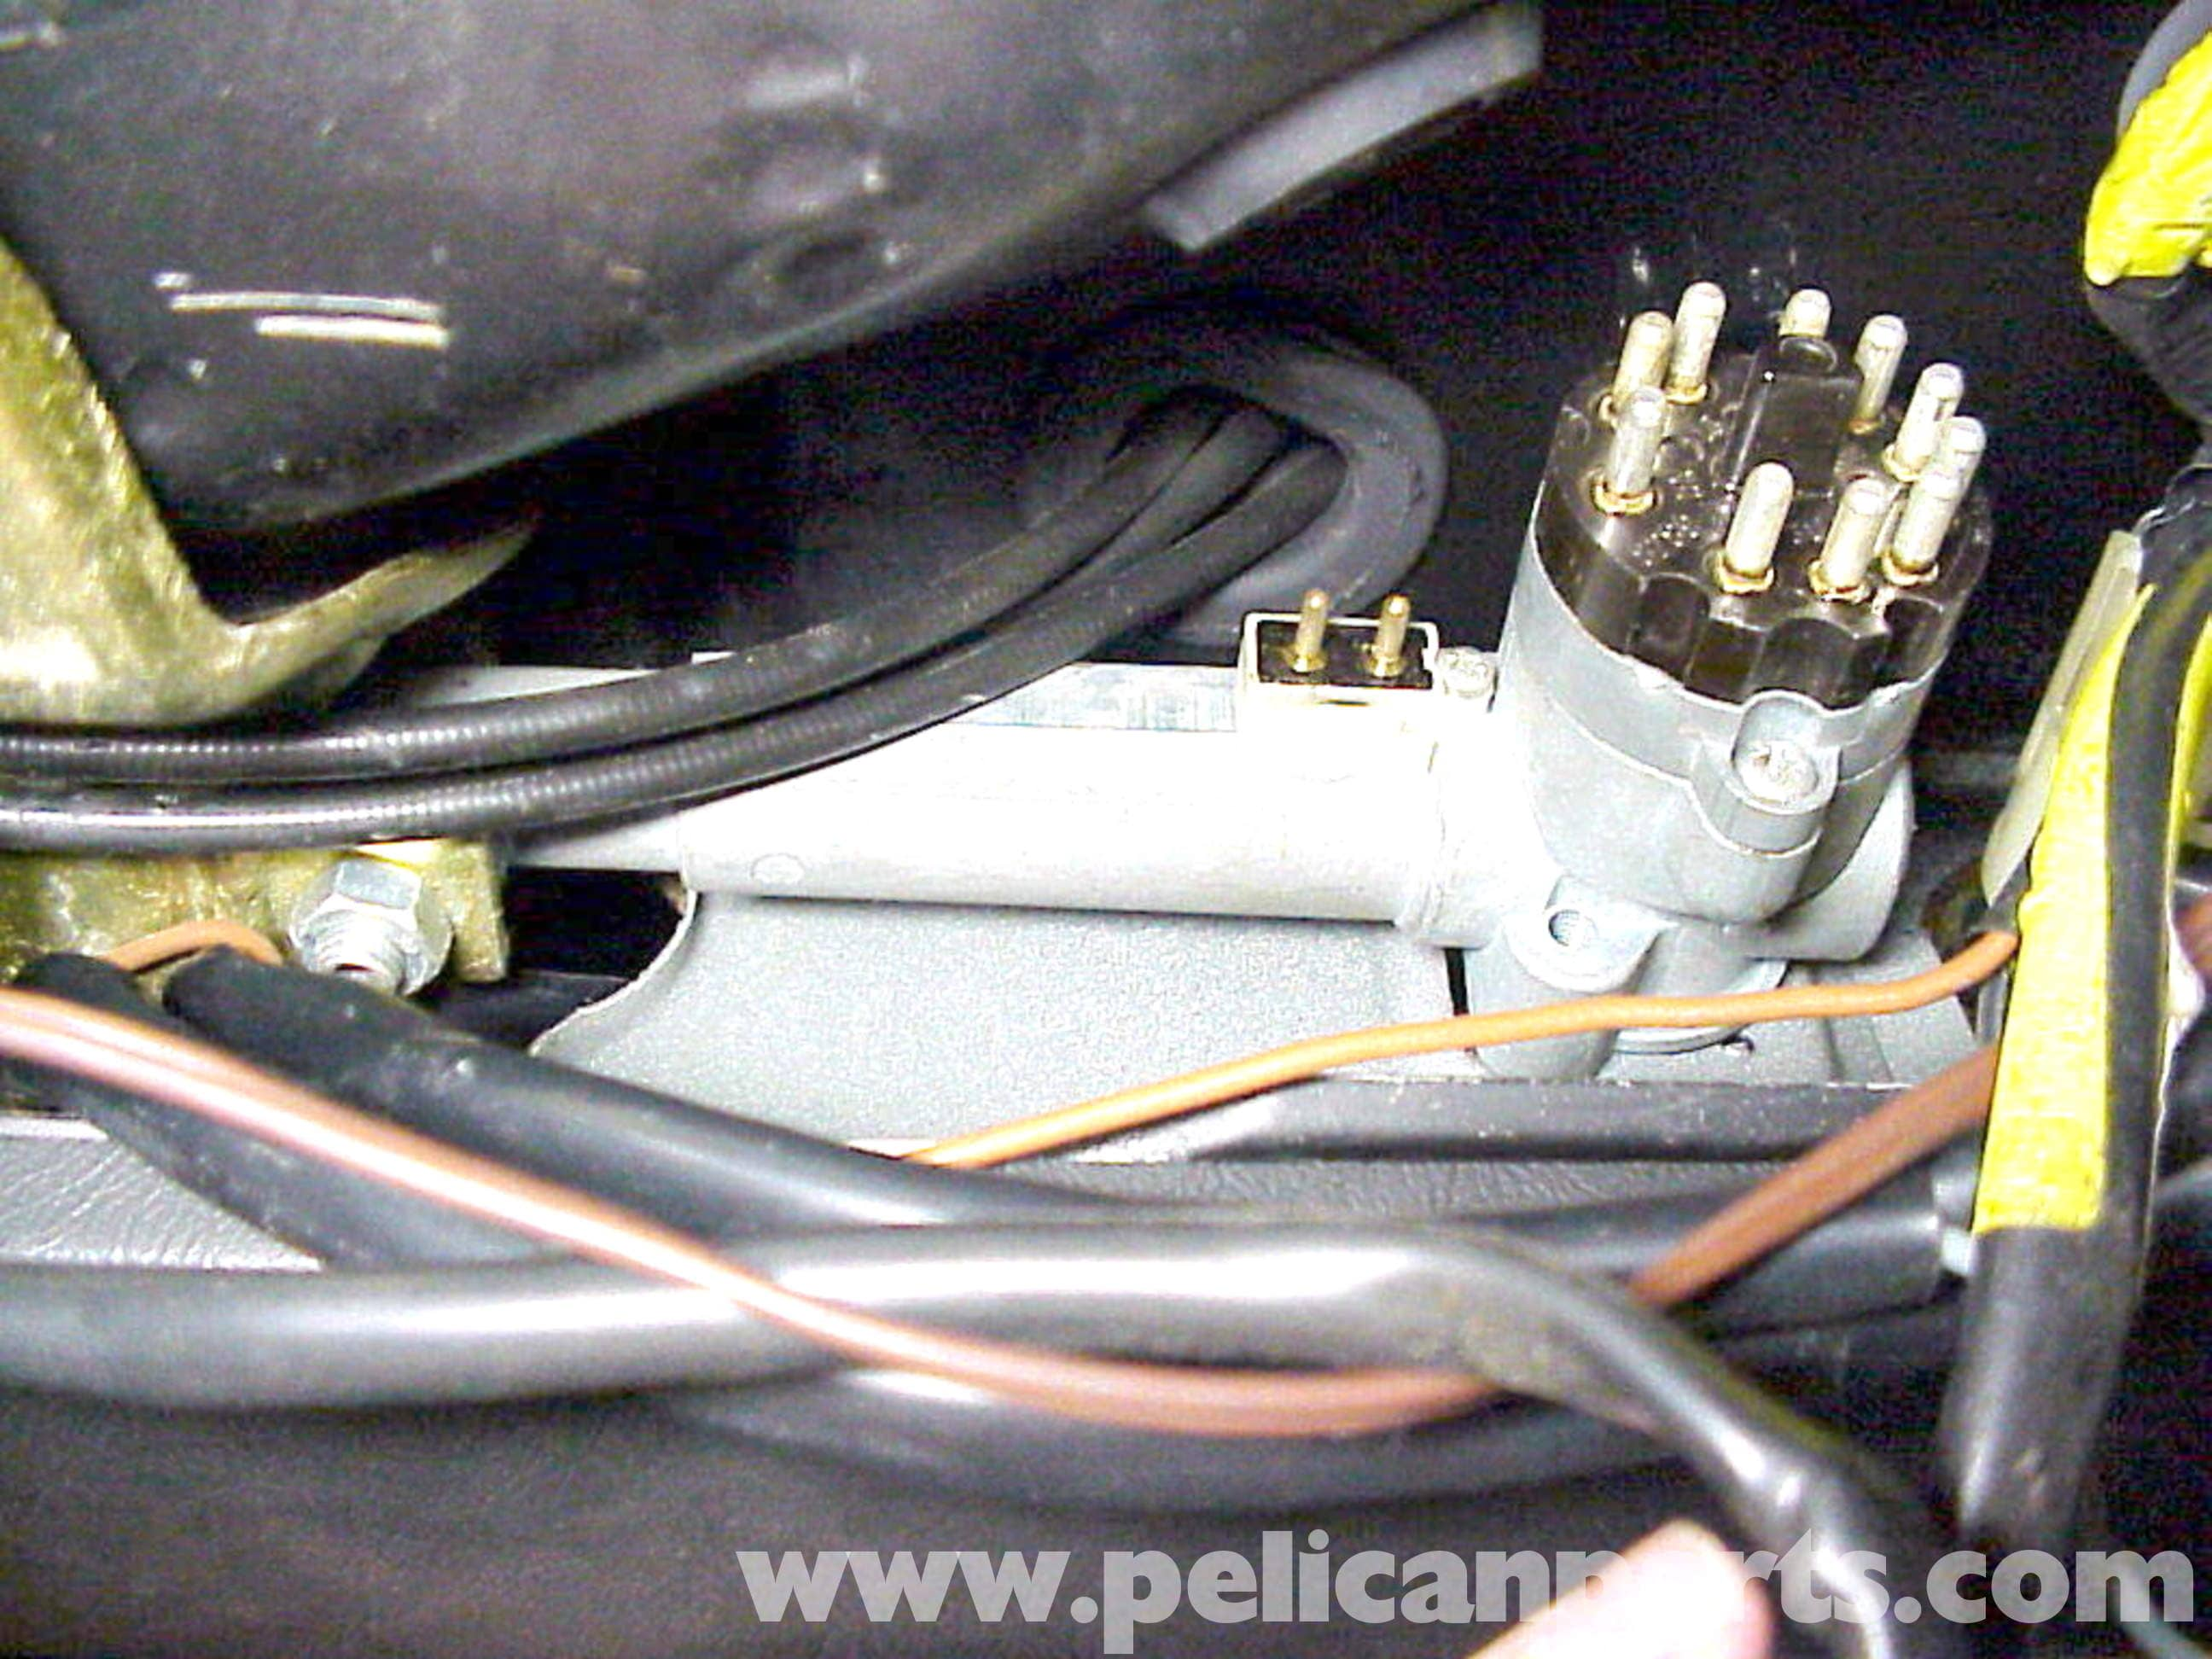 1973 Porsche 911 T Wiring Diagrams Schematics 964 Fuse Diagram Ignition Switch Replacement 1965 89 930 Turbo Rh Pelicanparts Com 1981 1968 912